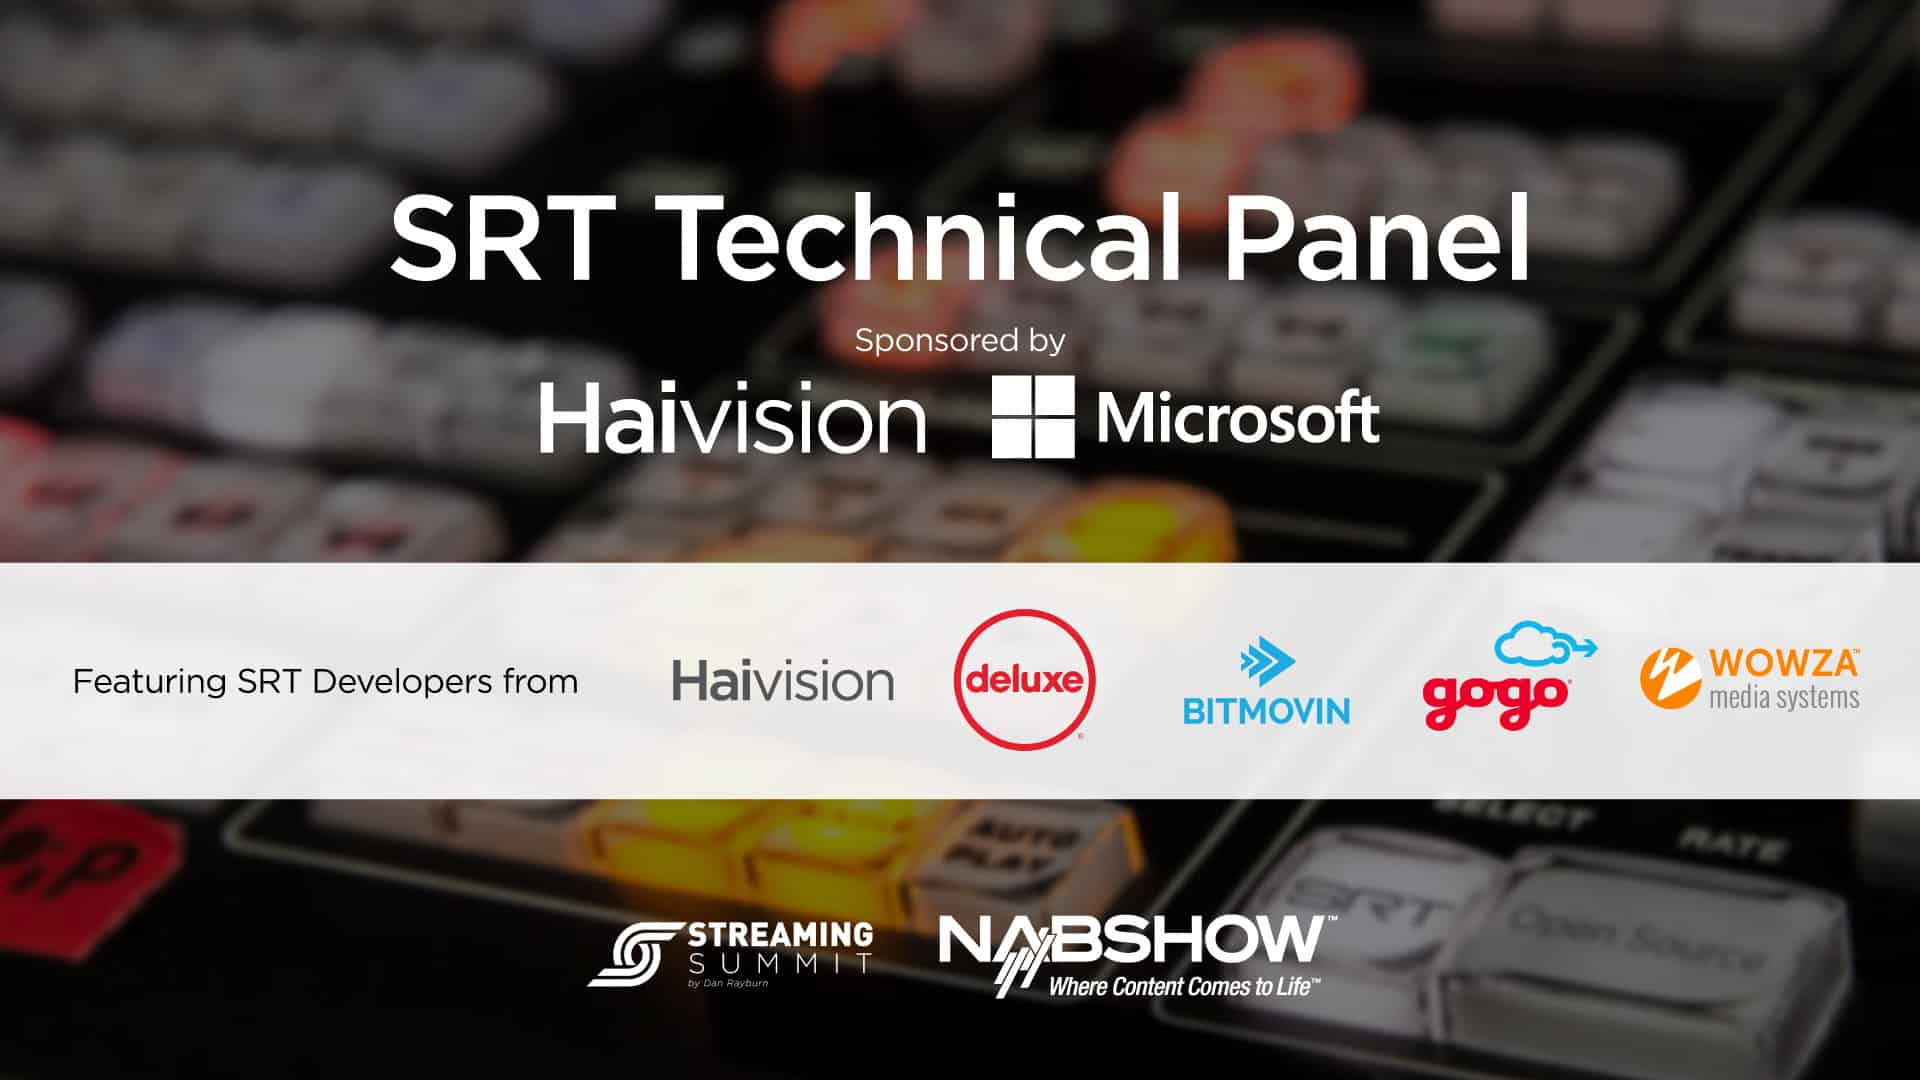 SRT Technical Panel | Haivision